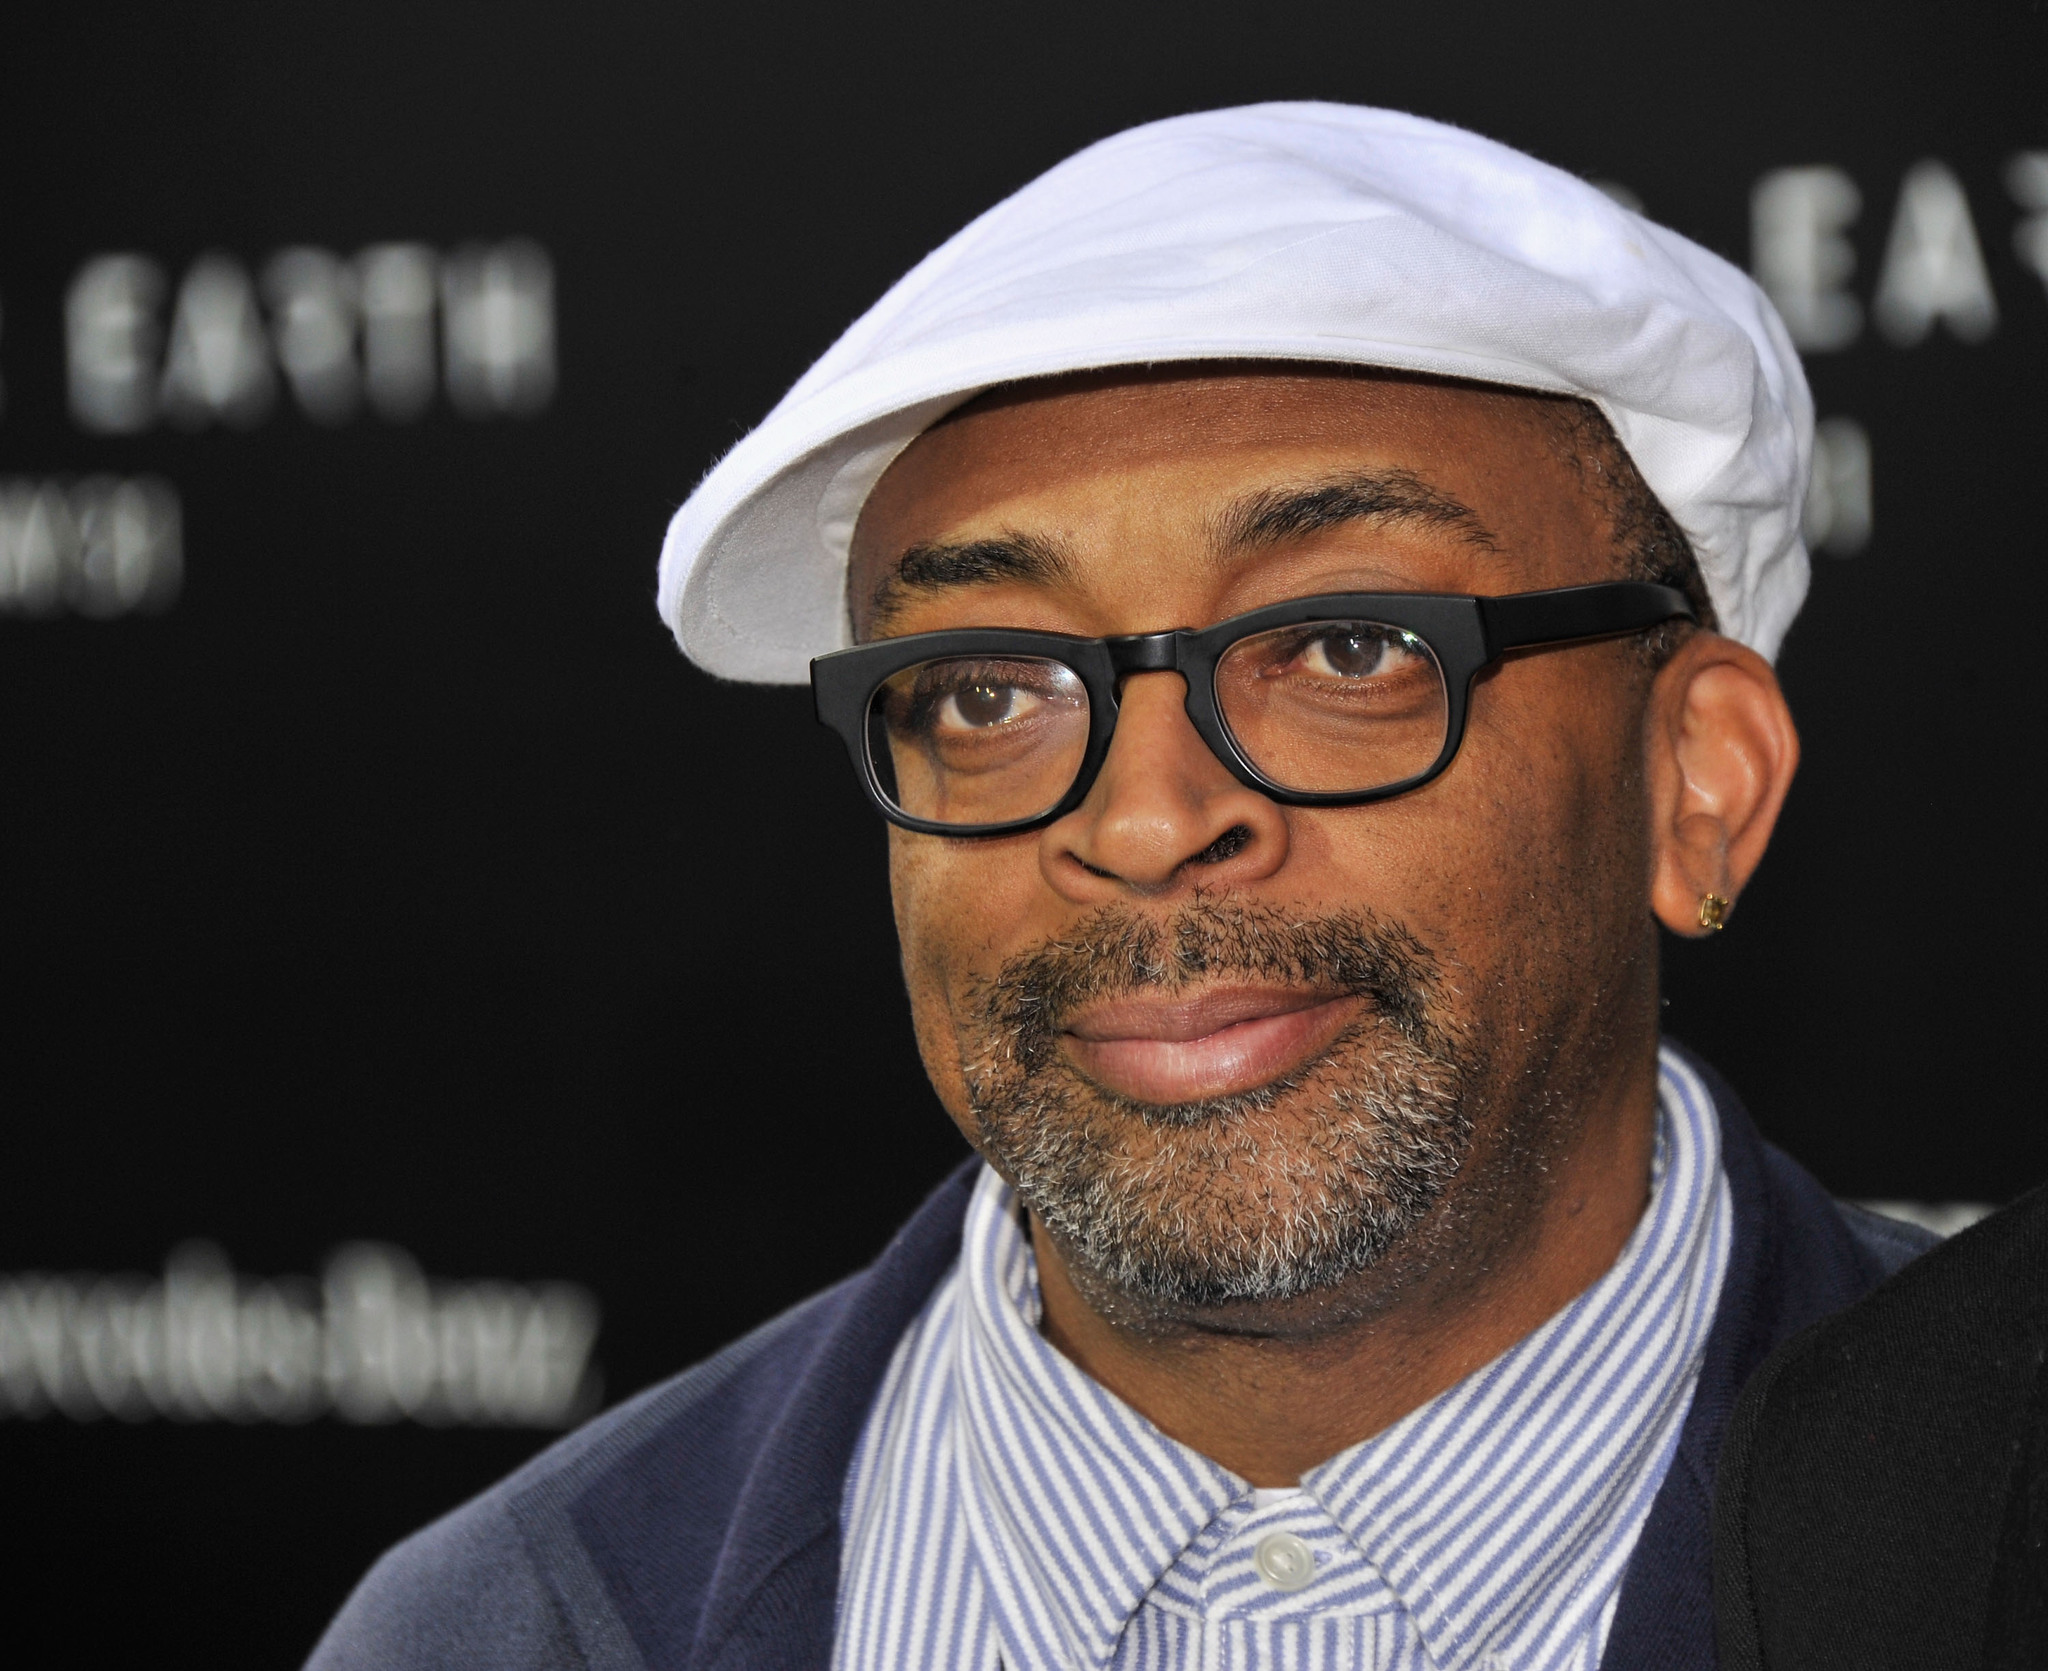 Spike Lee at an event for After Earth (2013)